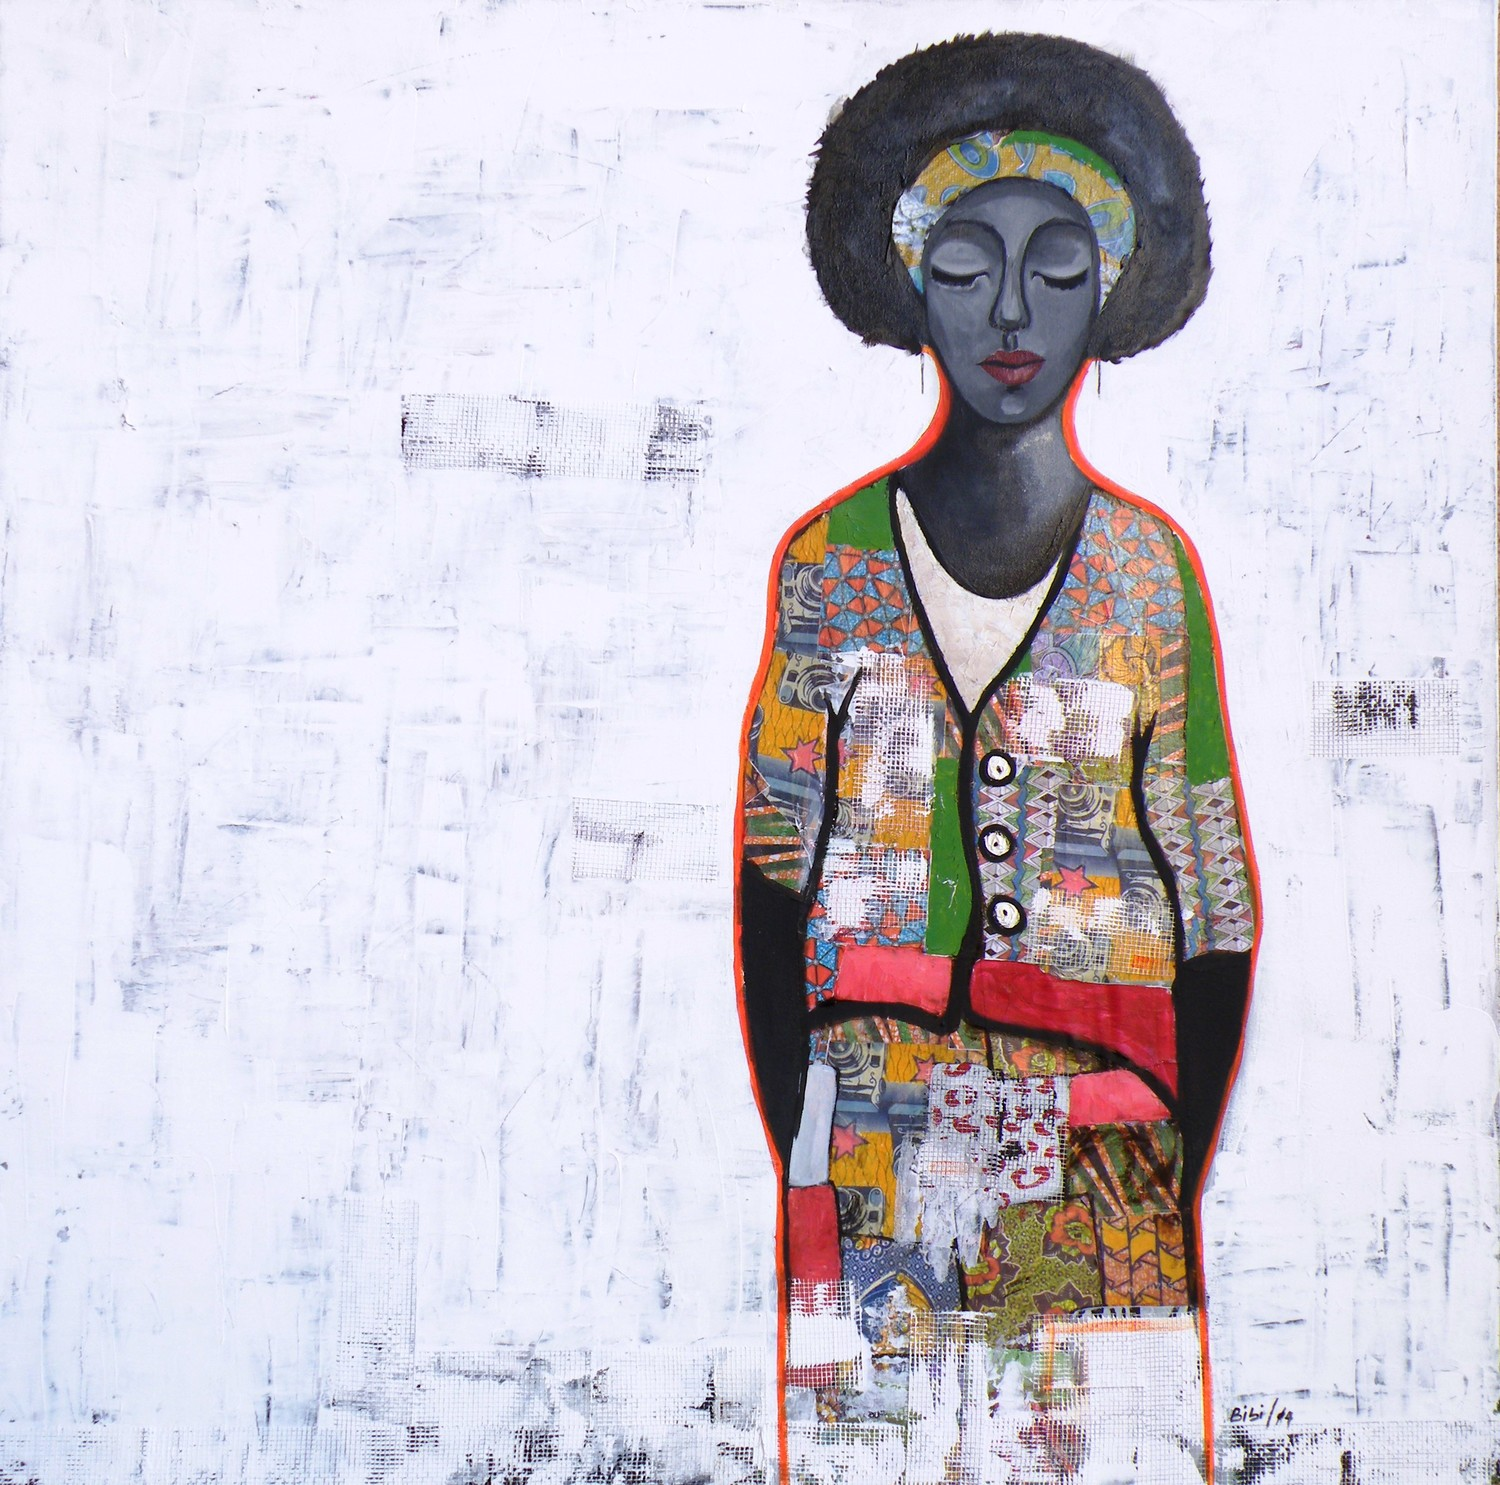 BIBI | NIGERIA    BIBI IS AN AUTODIDACT WHOSE WORK IS INFORMED BY HER LIFE AND TRAVELS. SHE EMPLOYS A COMBINATION OF DIFFERENT STYLES, MEDIA AND PROCESSES FOR EACH ARTWORK, DEPENDING ...   READ MORE